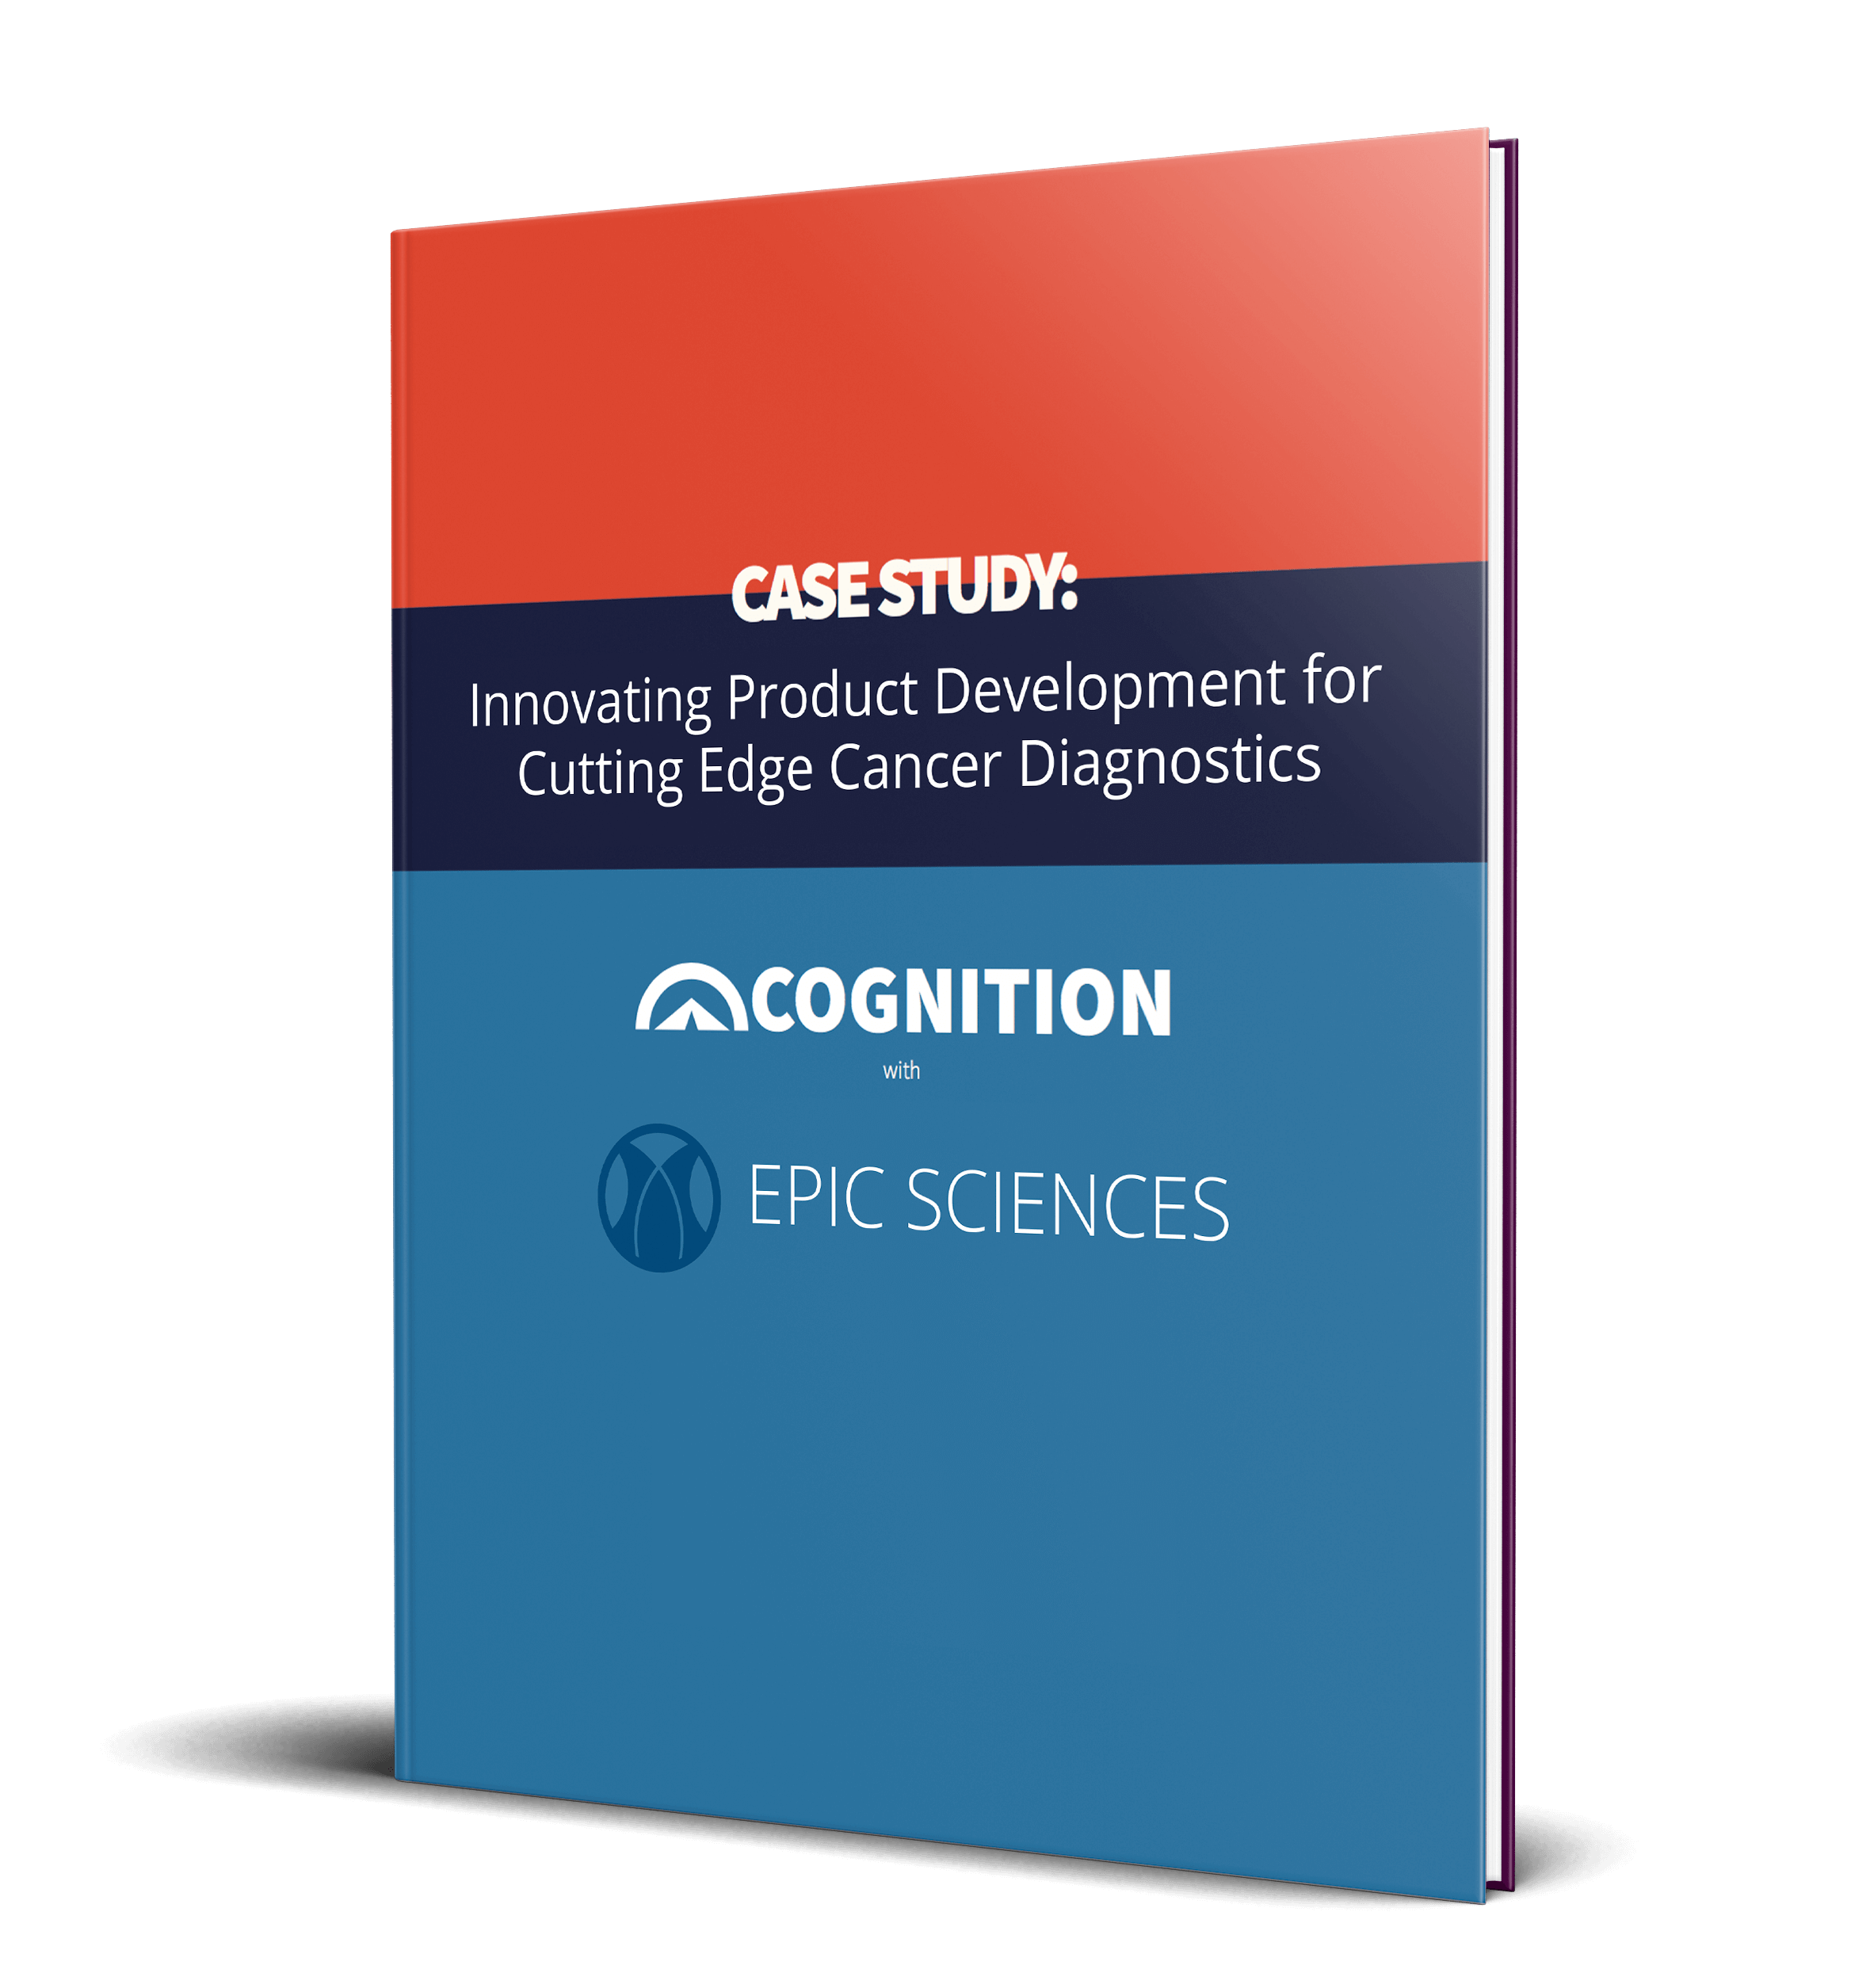 Cognition Corporation: Innovating Product Development for Cutting Edge Cancer Diagnostics a Case Study with Epic Sciences